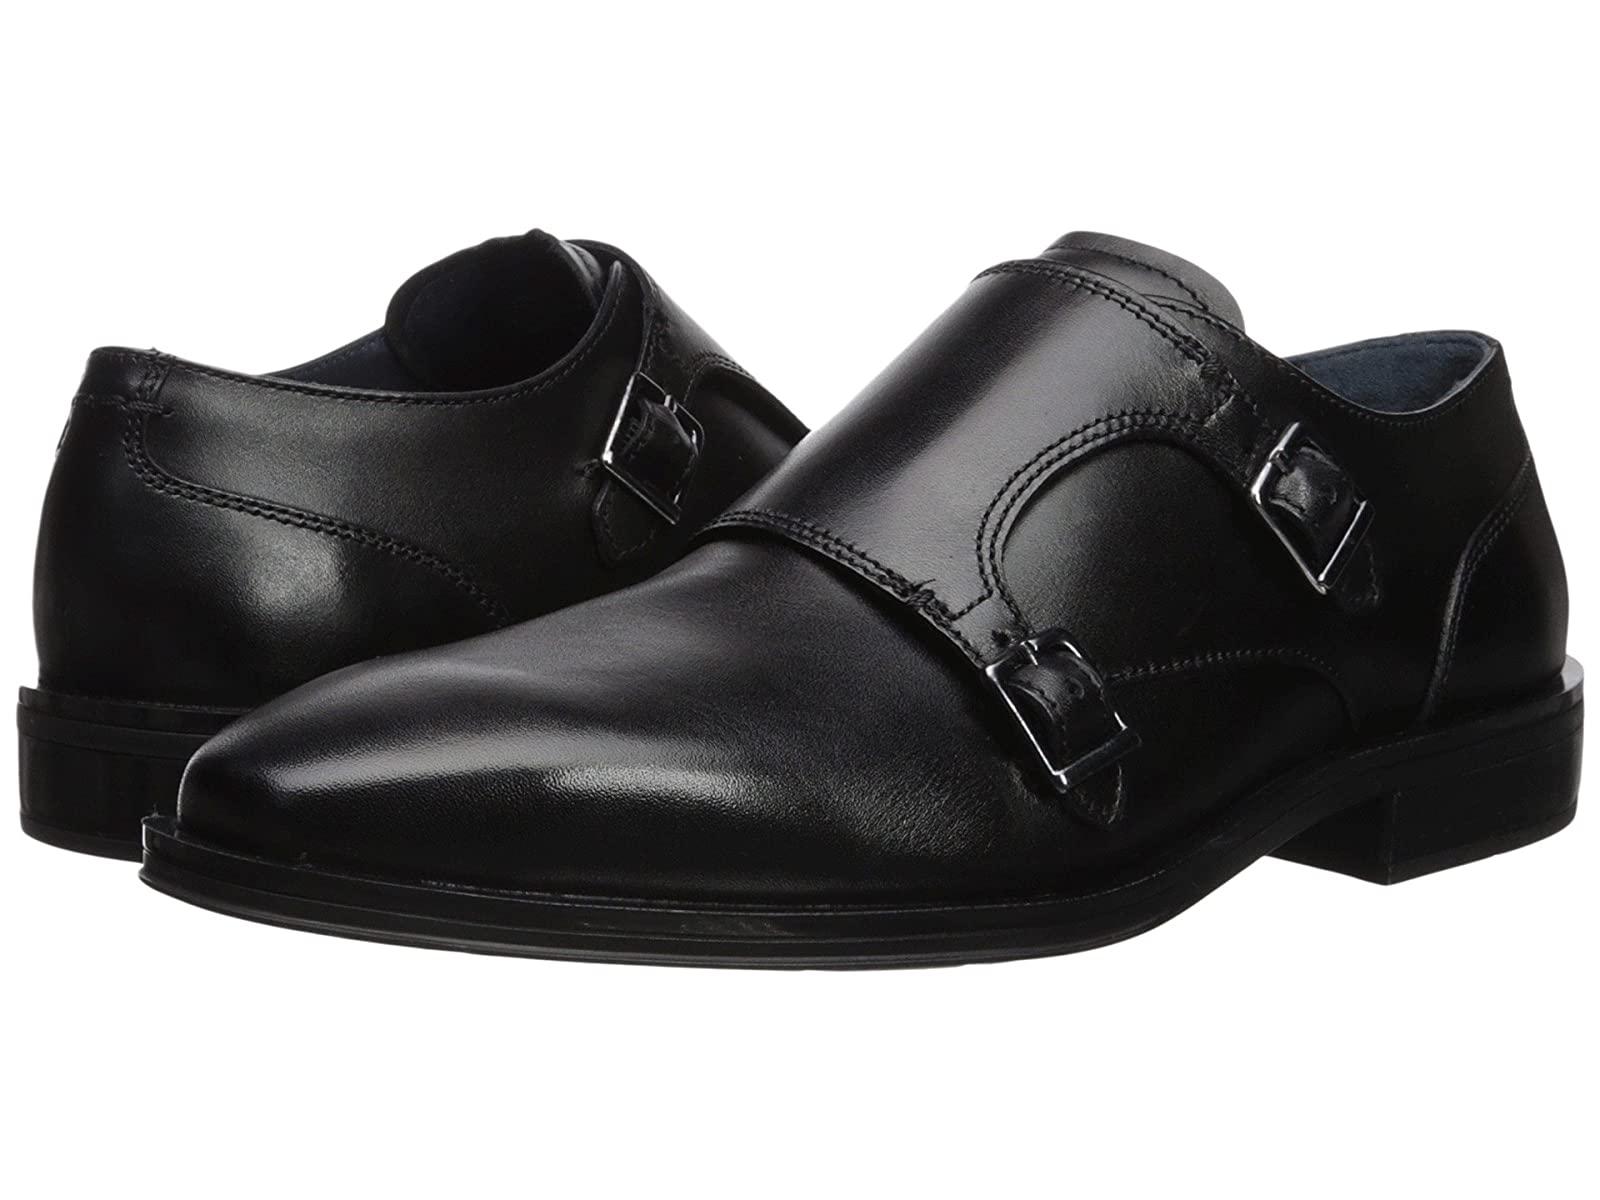 Cole Haan Dawes Grand Double MonkCheap and distinctive eye-catching shoes